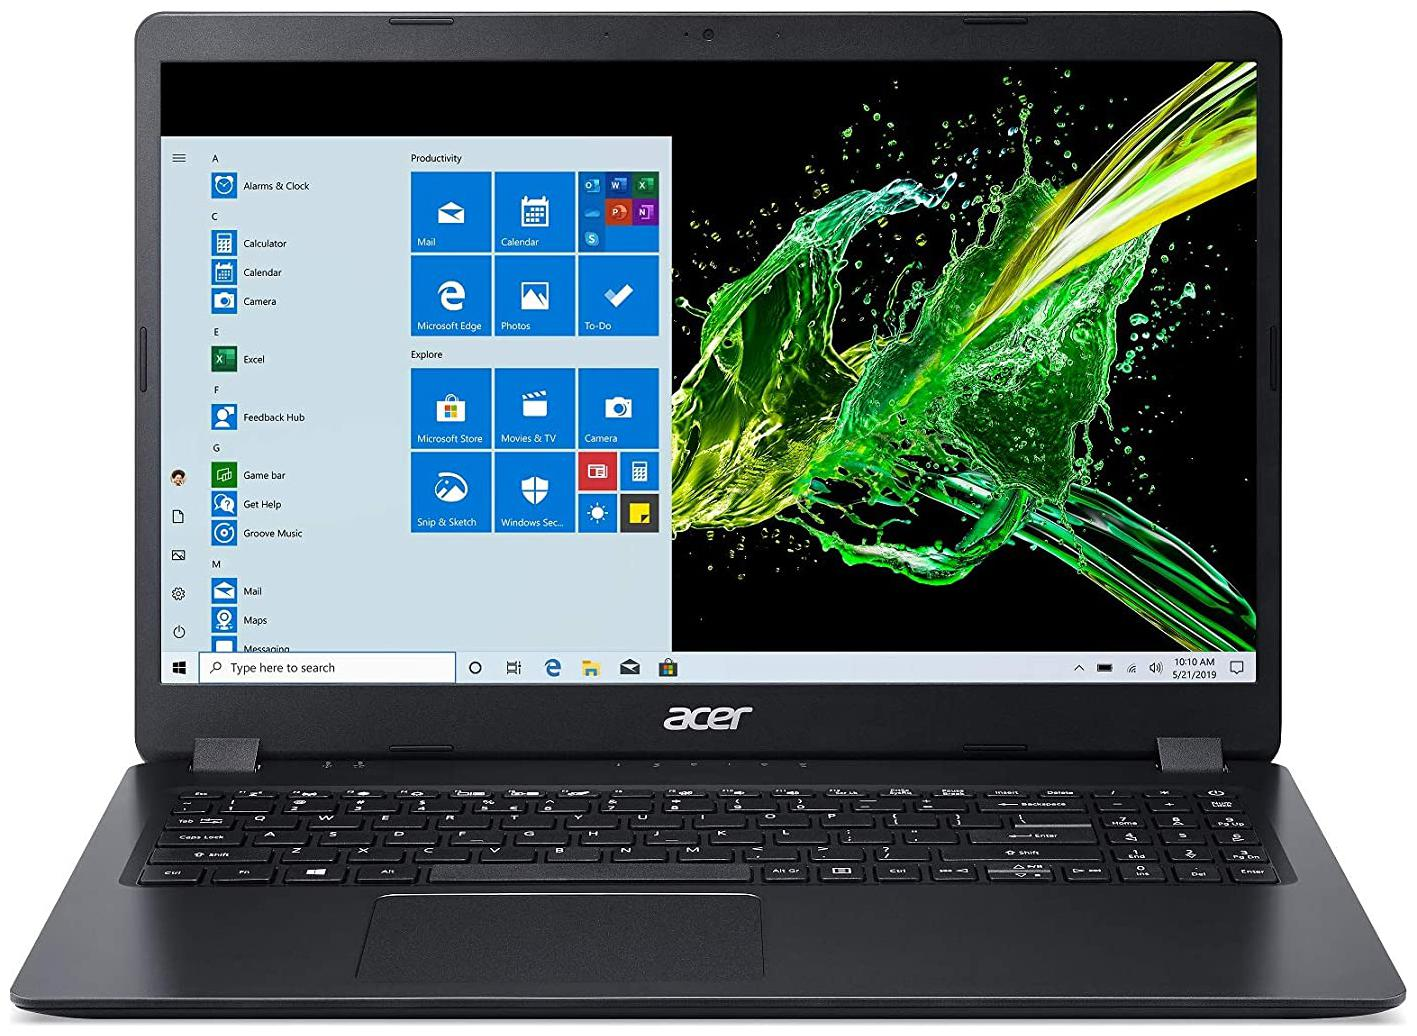 Acer Aspire 3 A315-56 15.6-inch Laptop (Intel Core i5-1035G1/8GB/1TB HDD/Window 10, Home,...